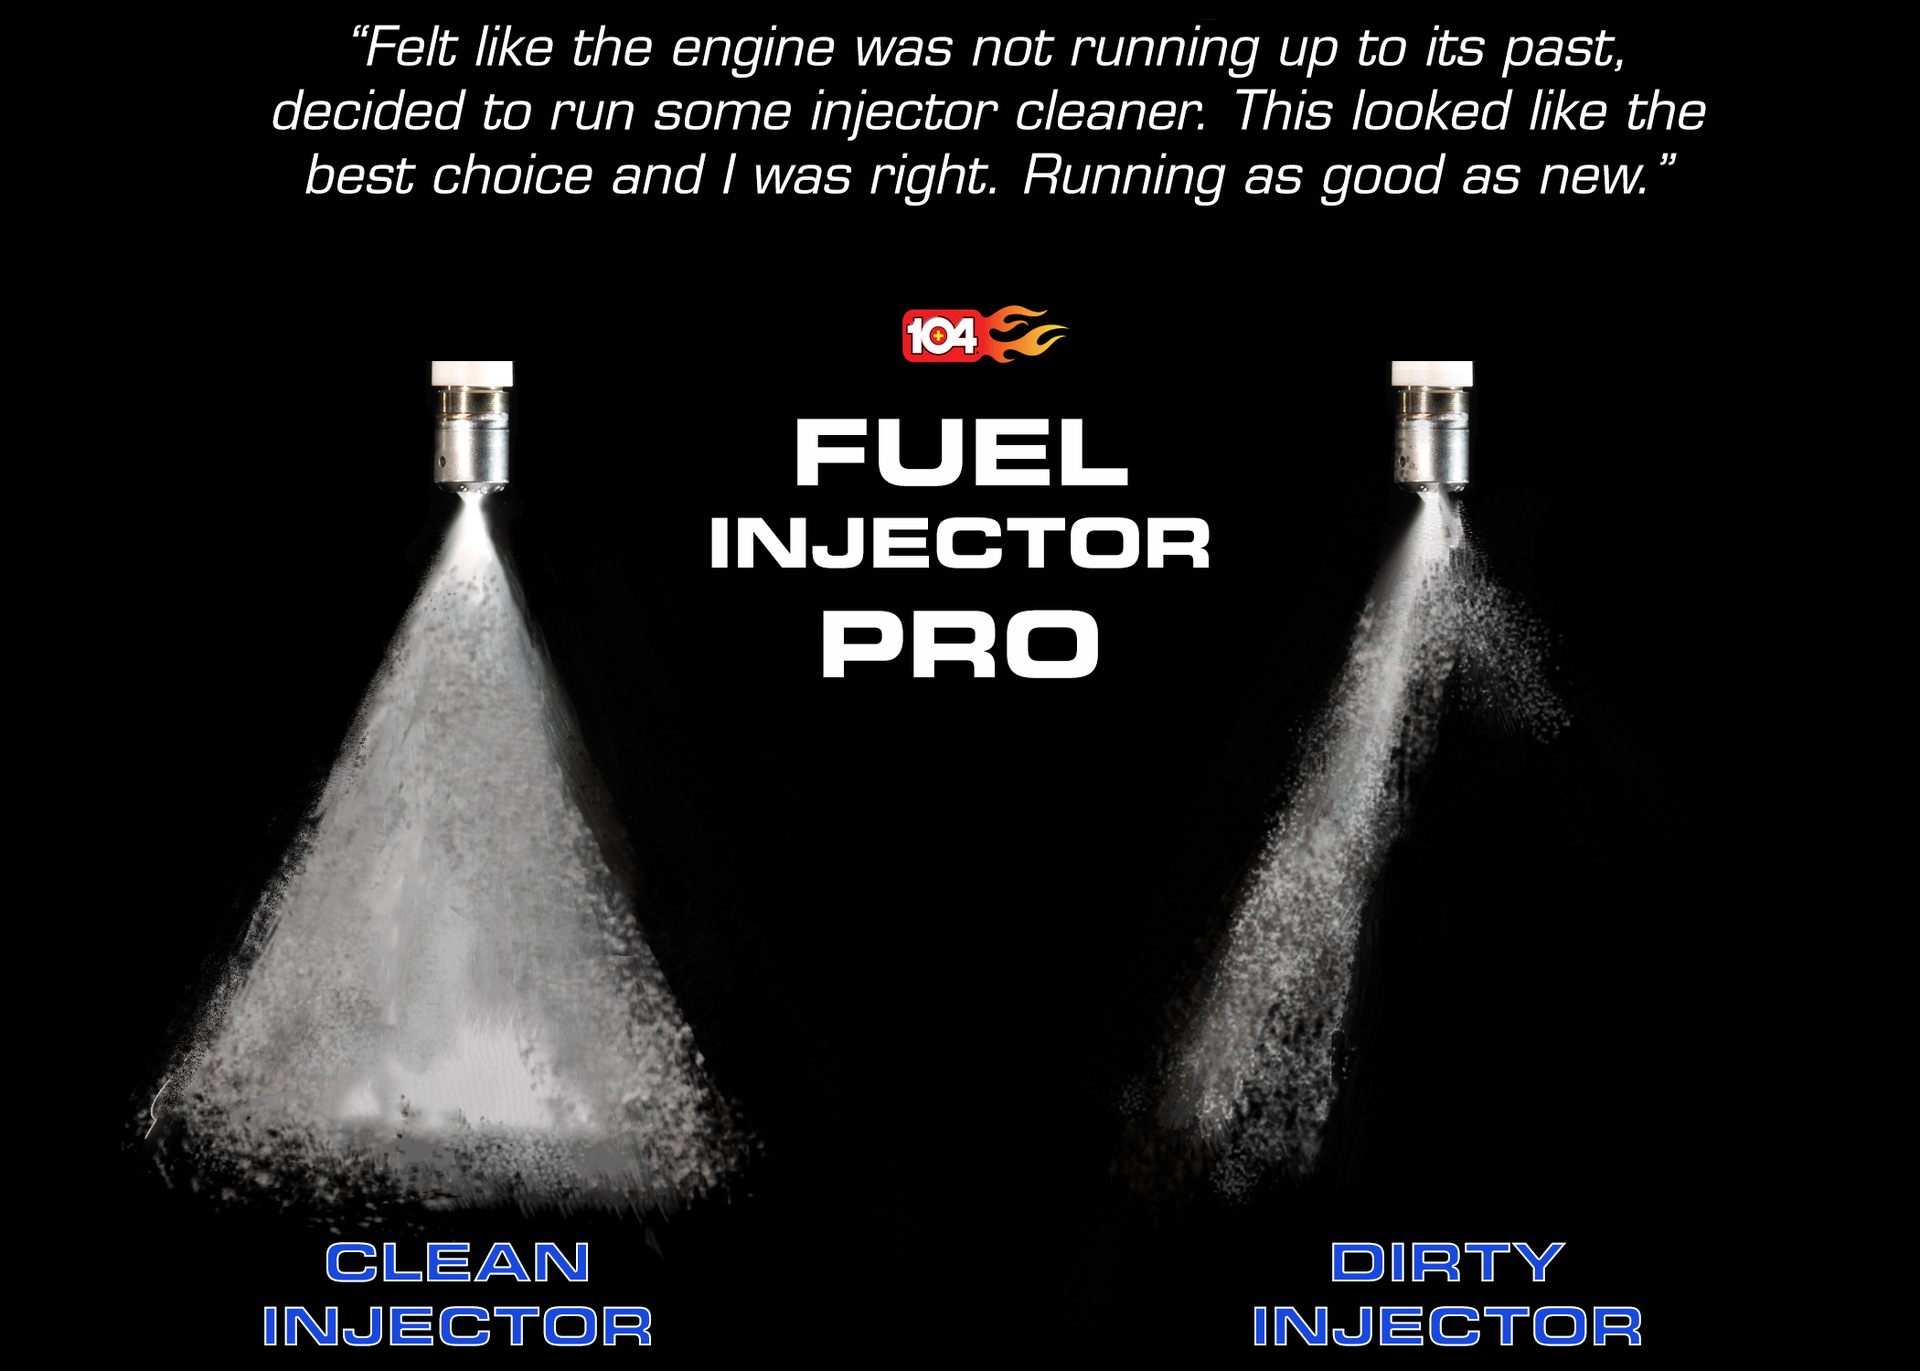 104+ (29214) Fuel Injector Pro, Fuel System Cleaner for Direct Injection  and Traditional Engines, 16 fl oz